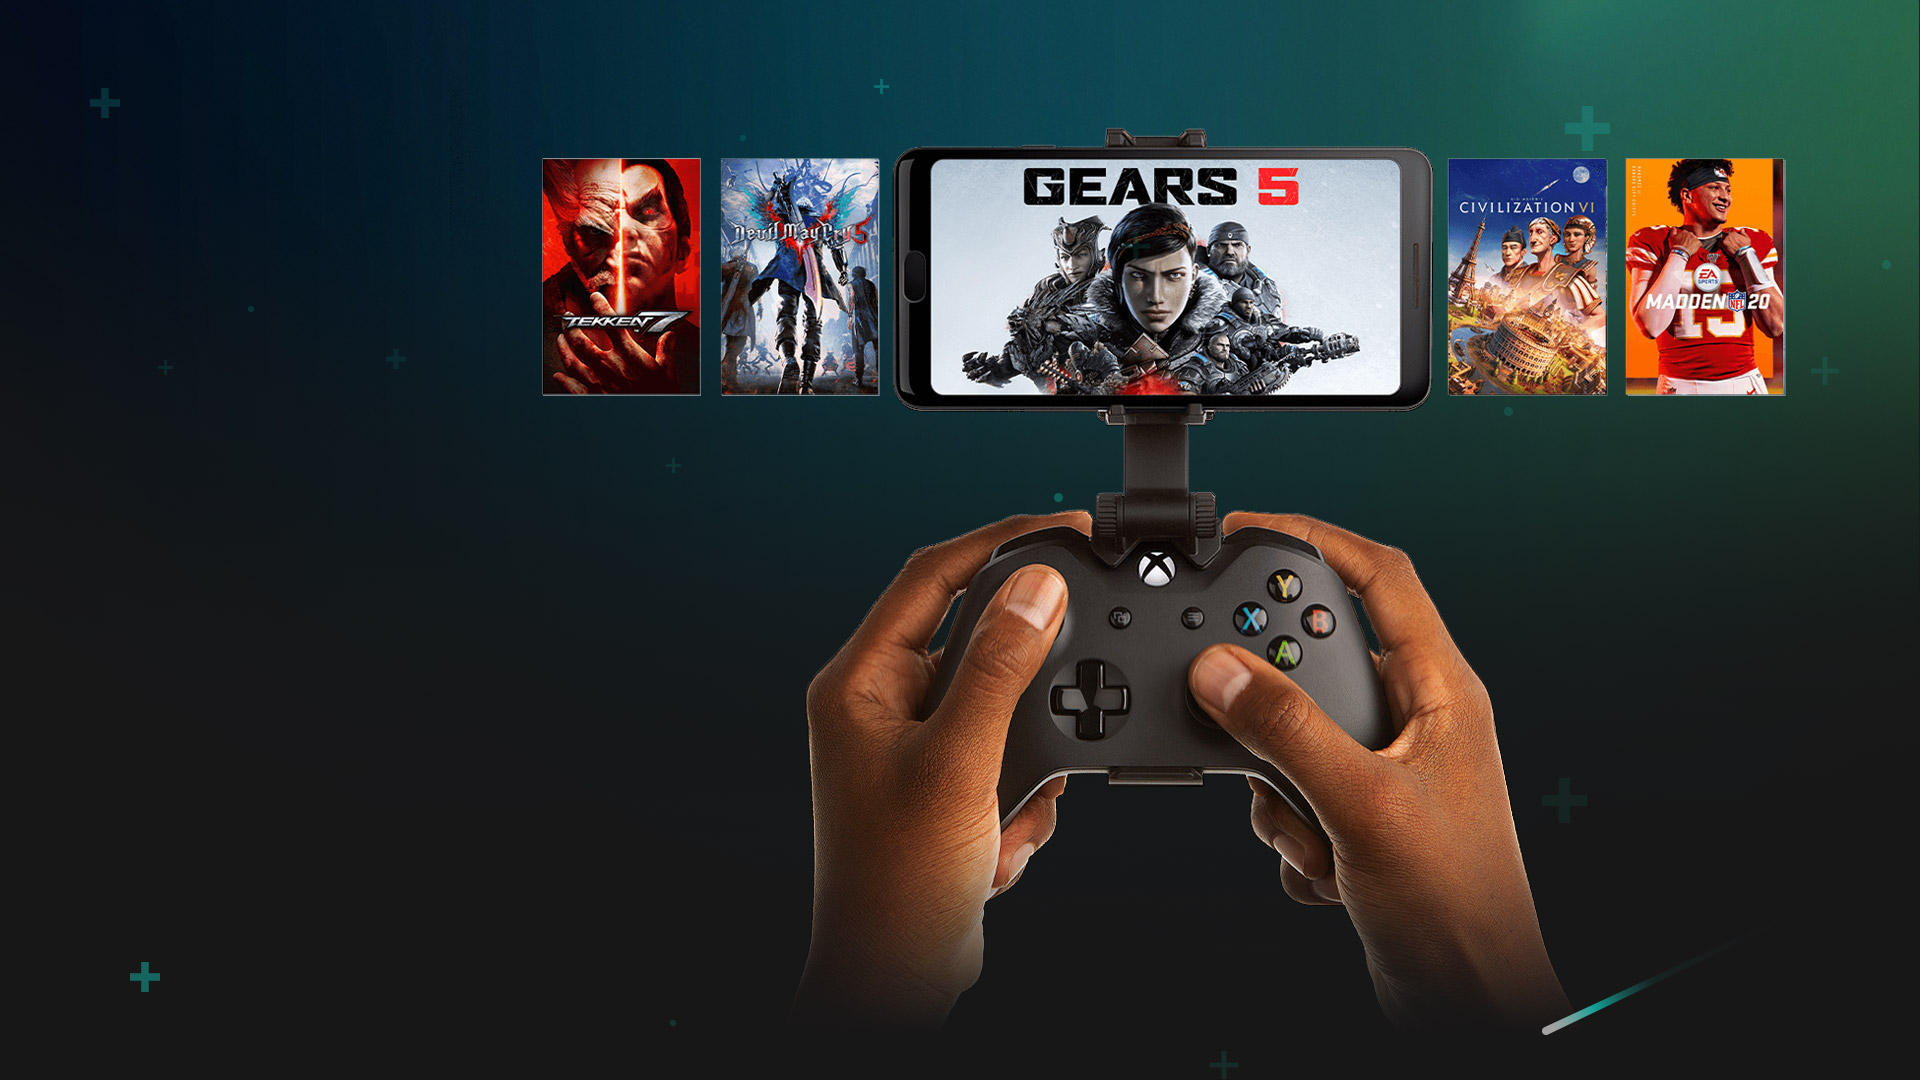 Hands holding a controller clipped to a phone playing Gears 5, with additional games pictured in the background.